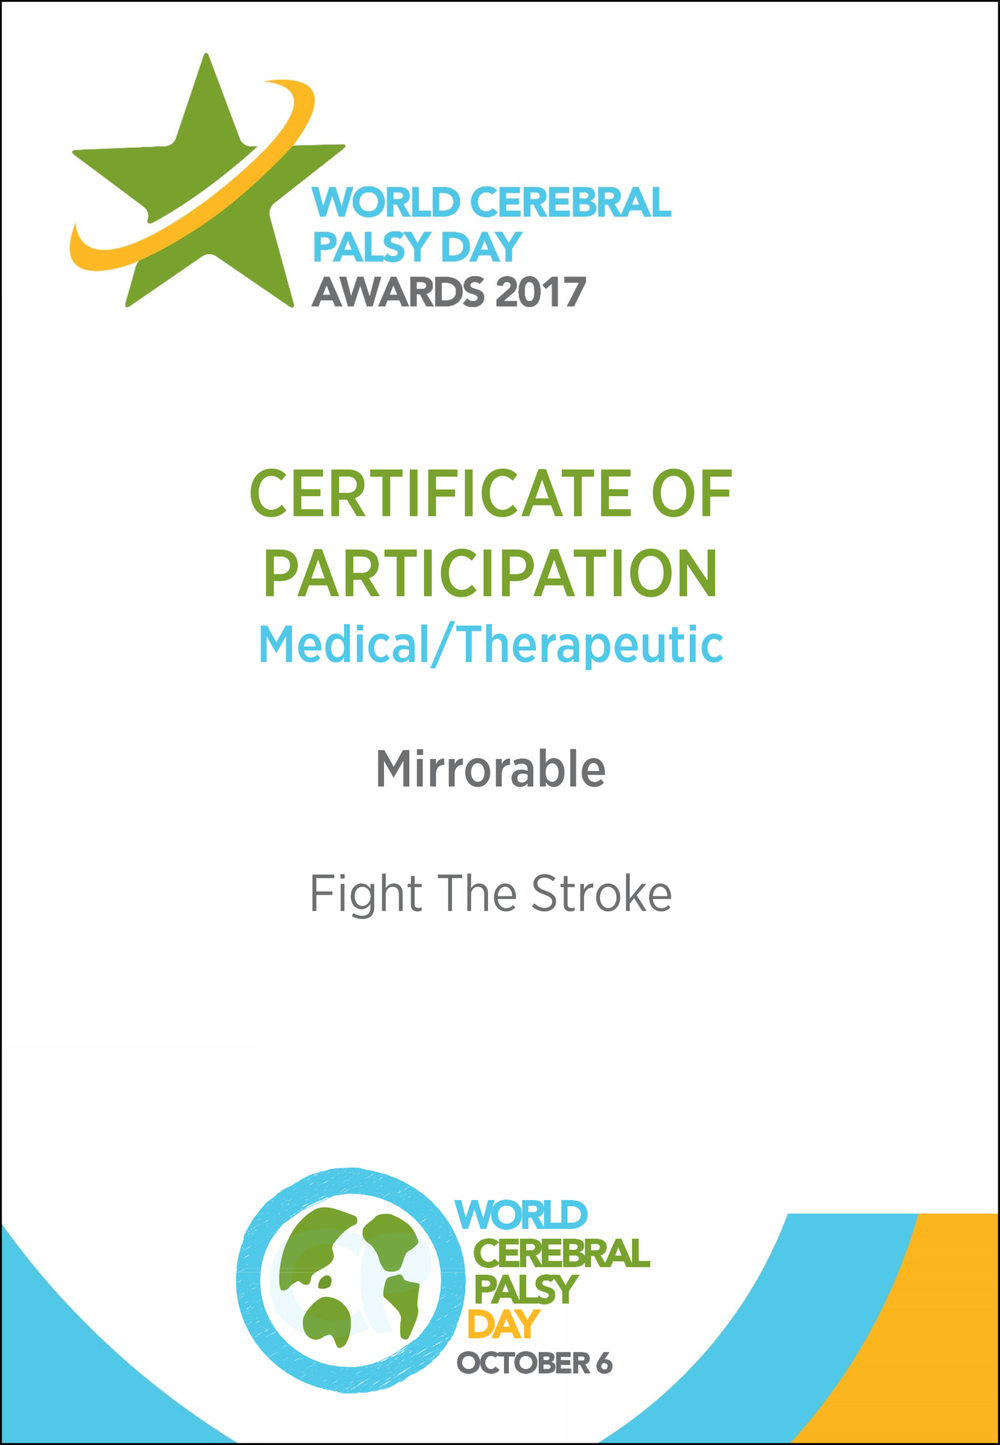 World Cerebral Palsy Day Awards 2017